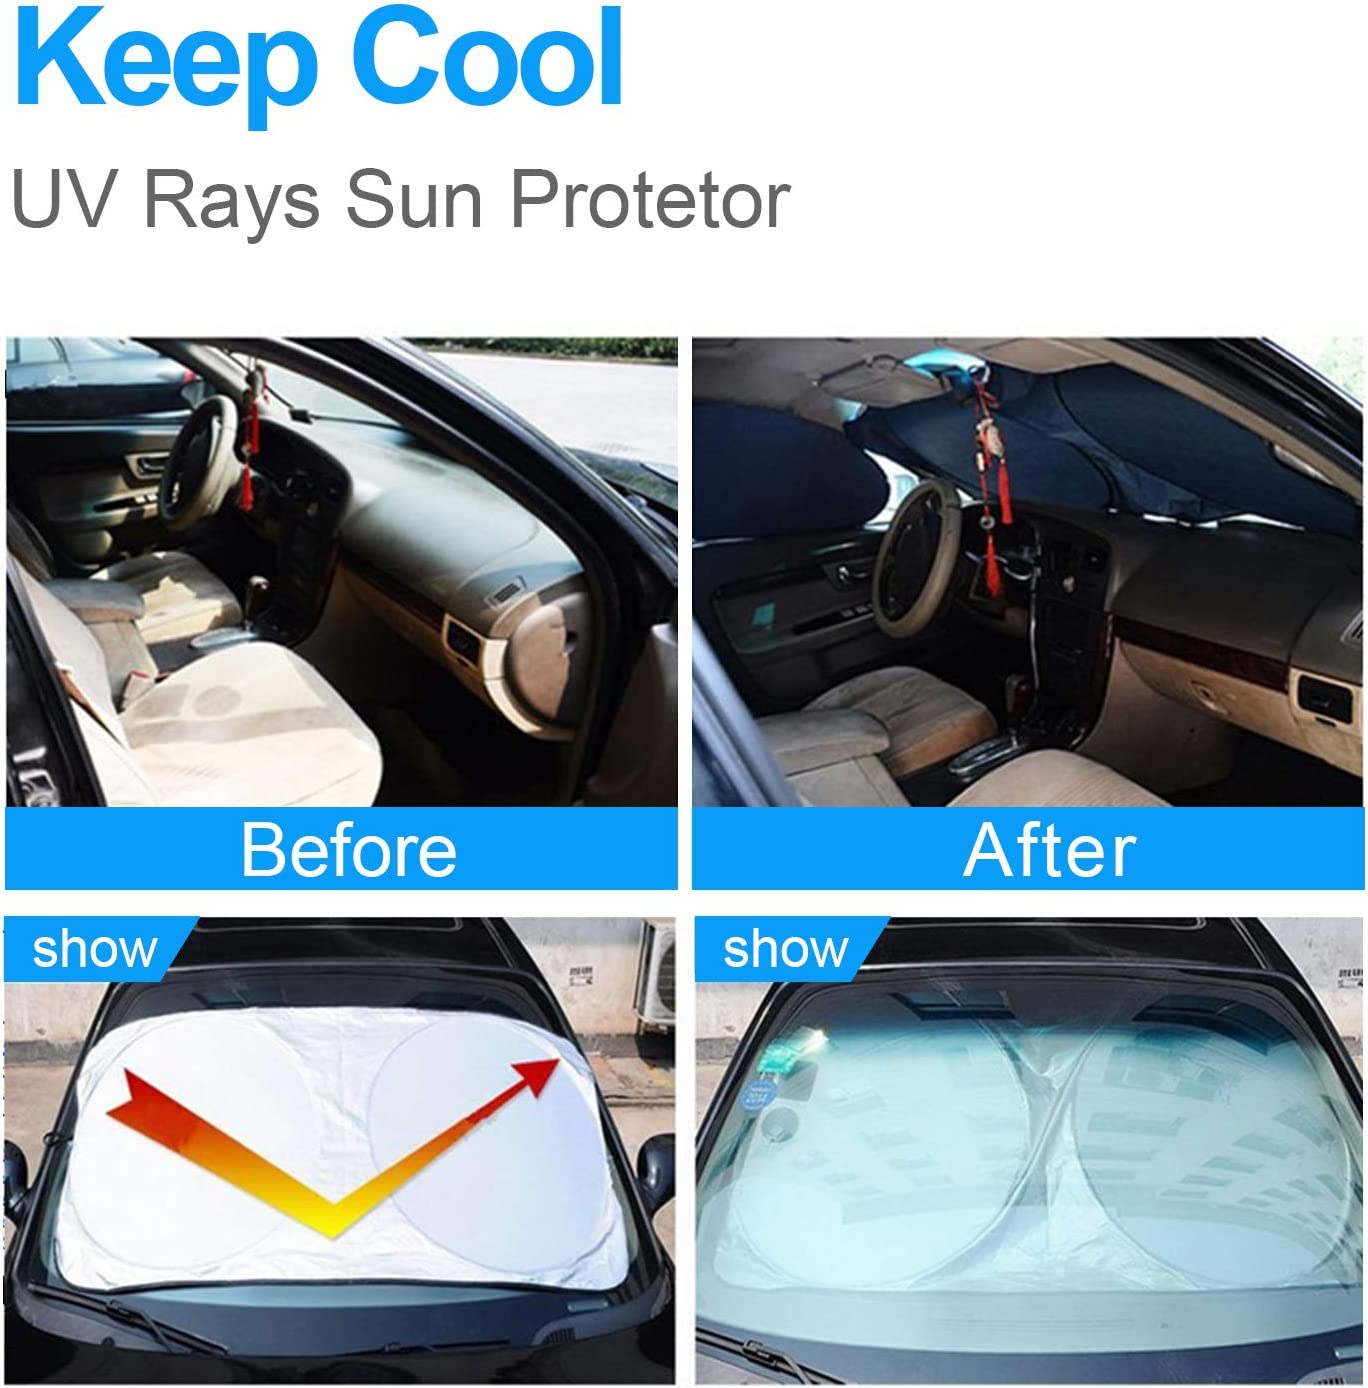 OKEECA Car Windshield Sun Shade,Blocks UV Rays Sun Visor Protector,Sunshade to Keep Your Vehicle Cool and Damage Free Easy to Use Fits Windshields of Various Sizes 63inx35in //160cmx89cm